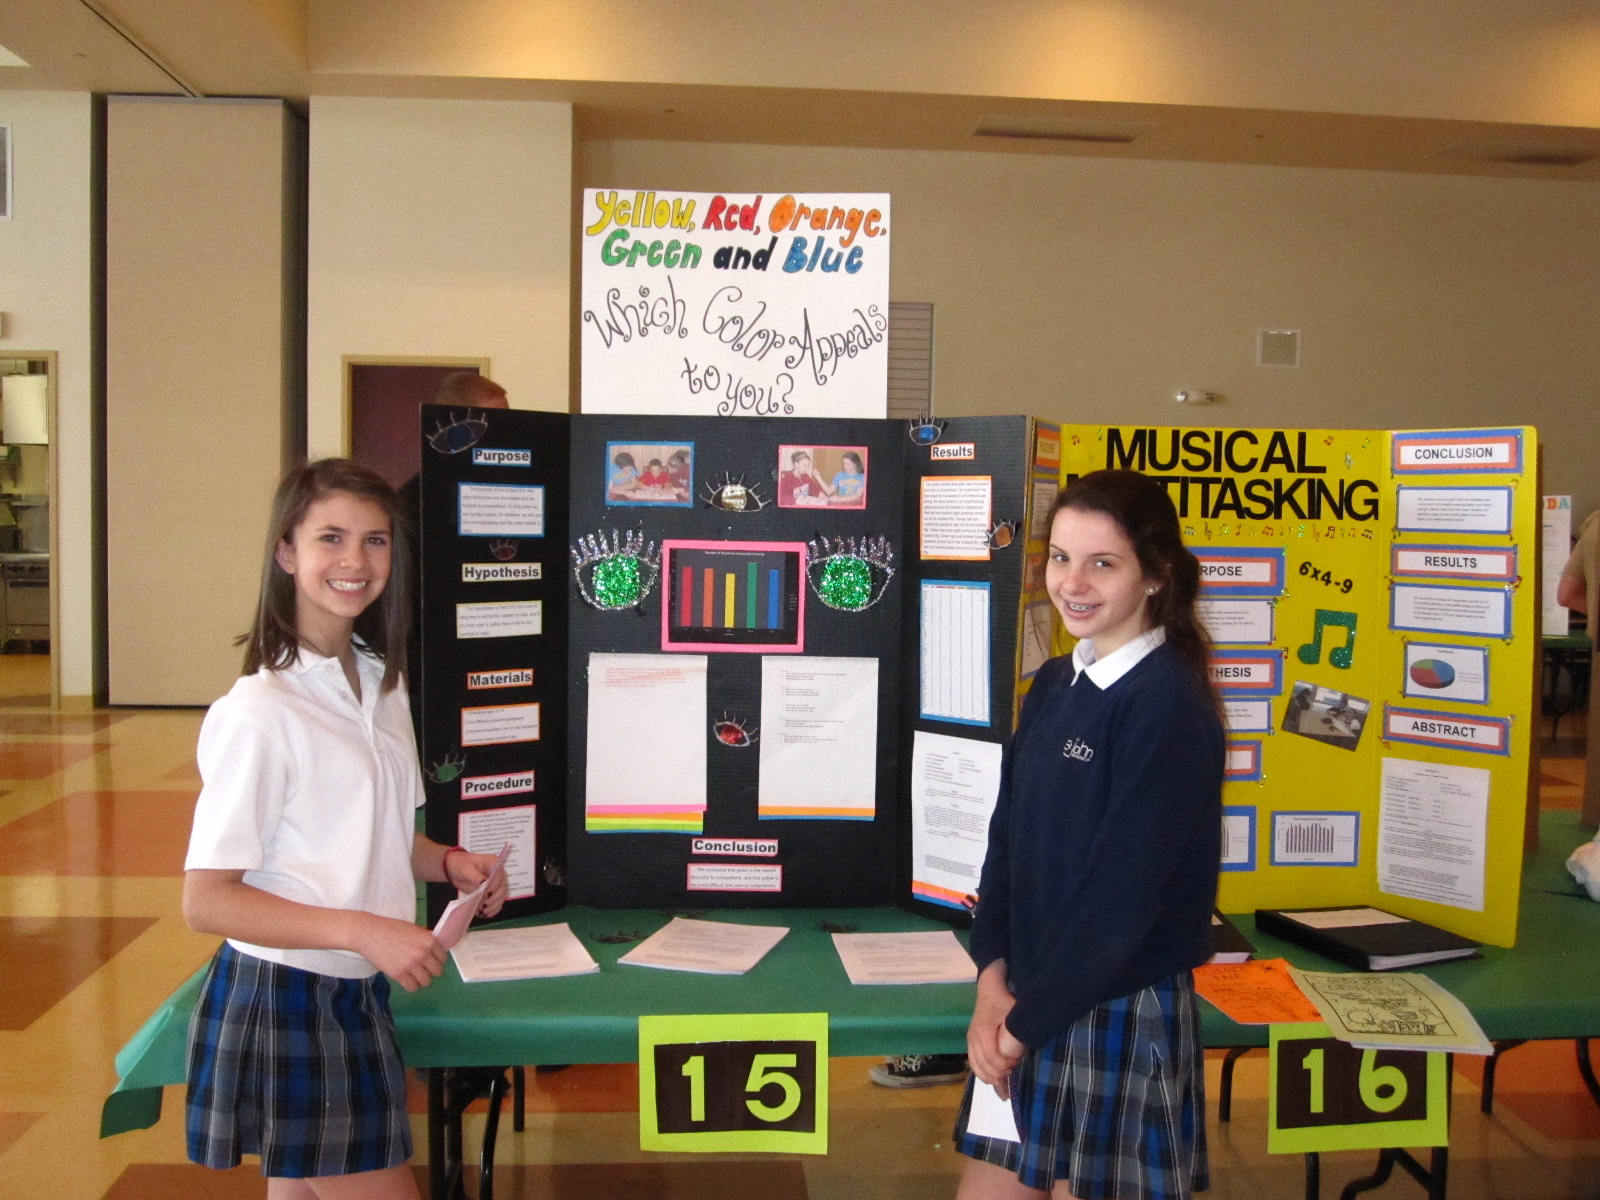 8th grade science please work on science fair